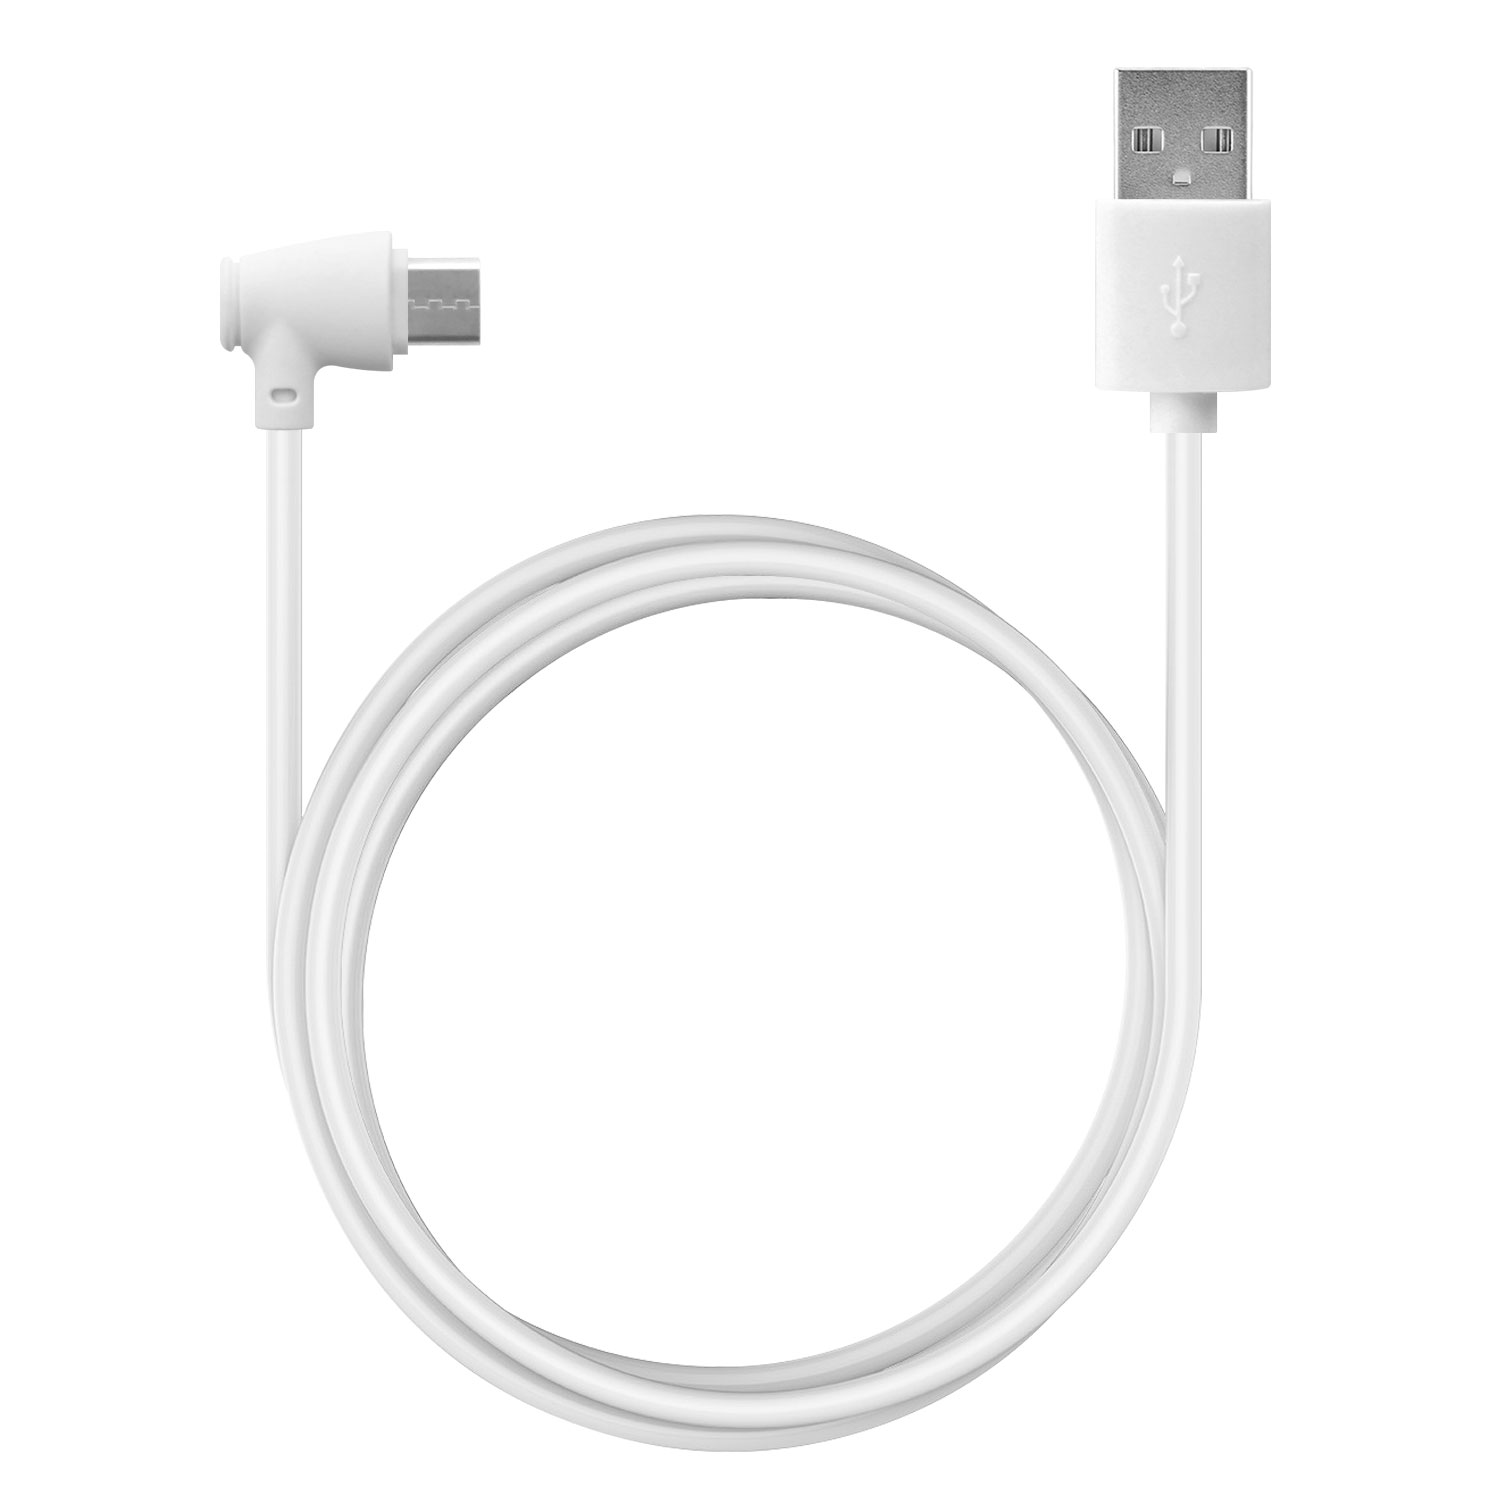 Blackberry KEYone USB Type-C To USB Type-A Data Charging Cable White 3.3ft Angled